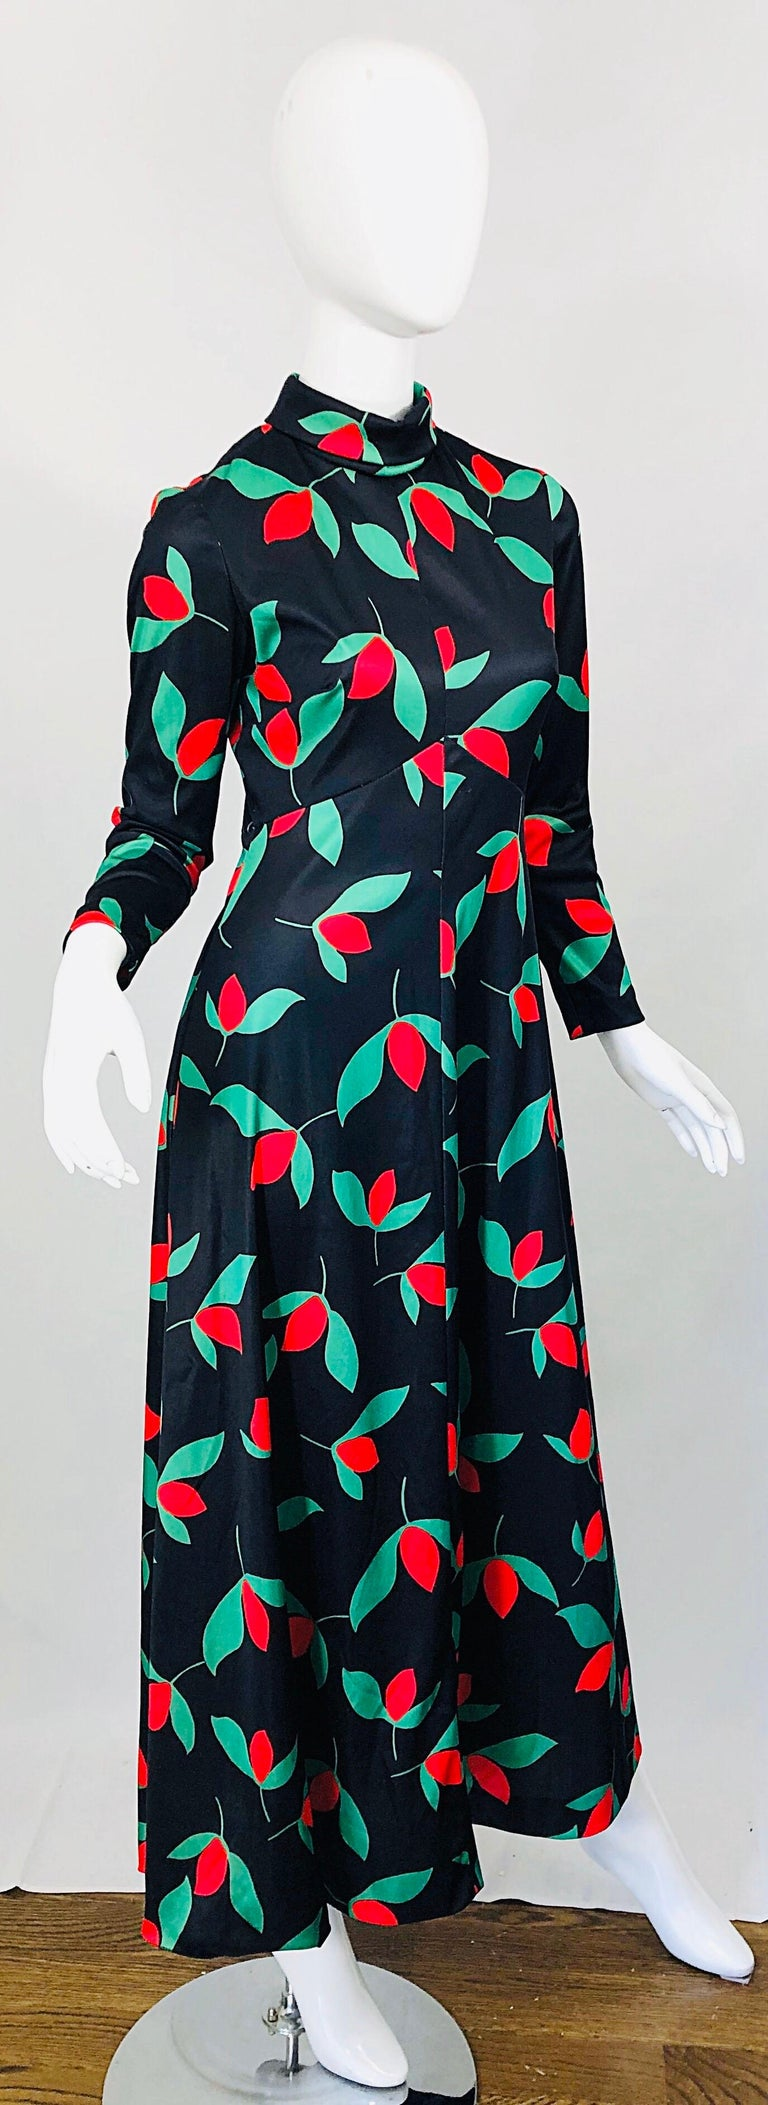 1970s Emilio Borghese Tulip Print Black + Green + Red Vintage 70s Maxi Dress For Sale 7